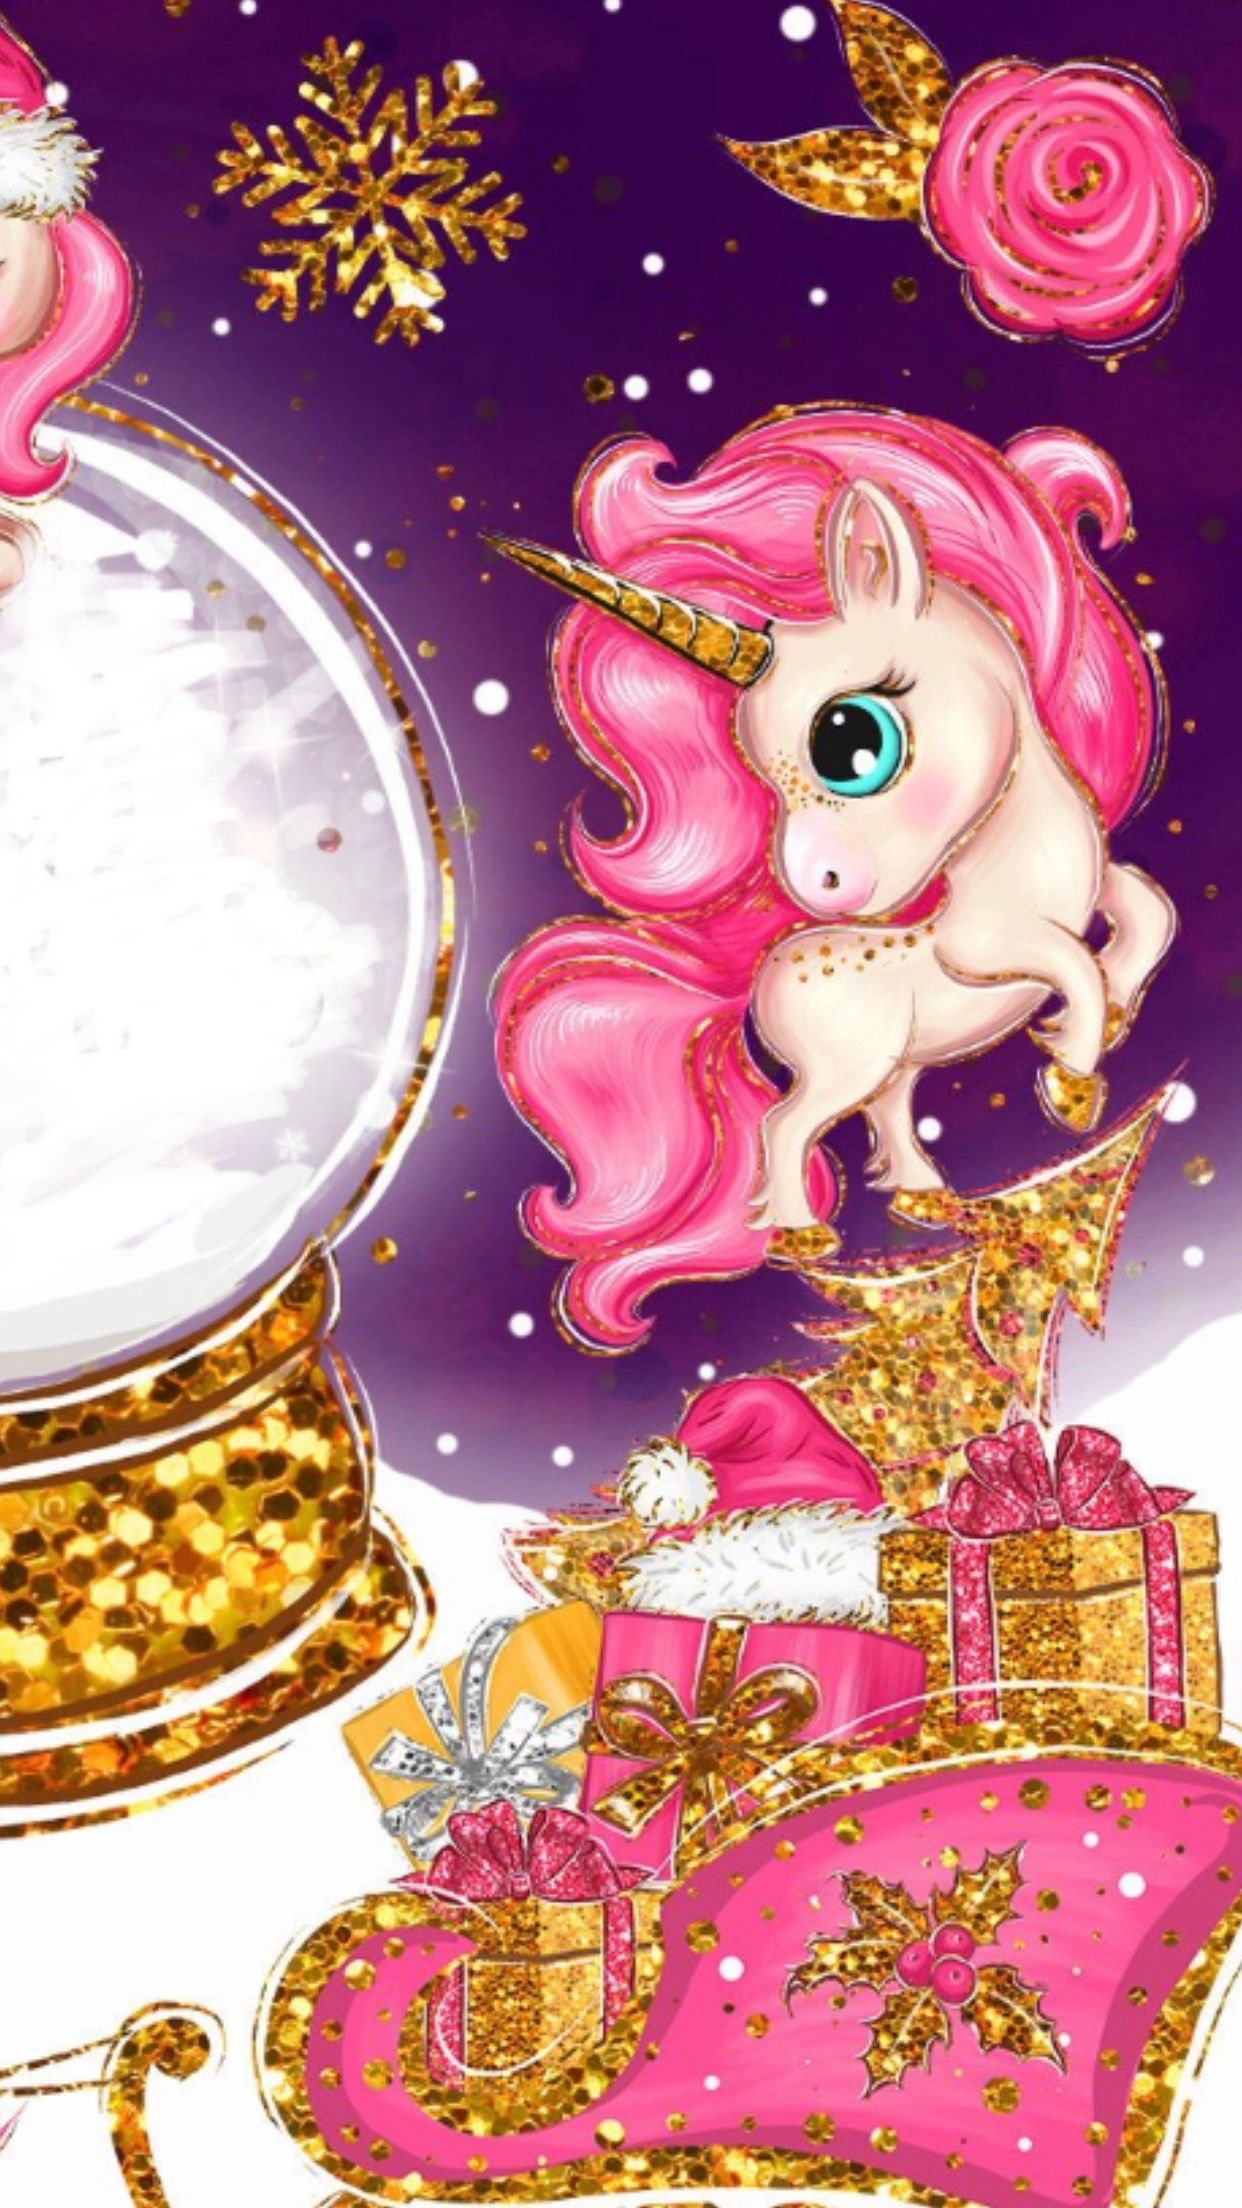 Wallpaper By Artist Unknown Unicorn Wallpaper Cute Christmas Wallpaper Unicorn Pictures